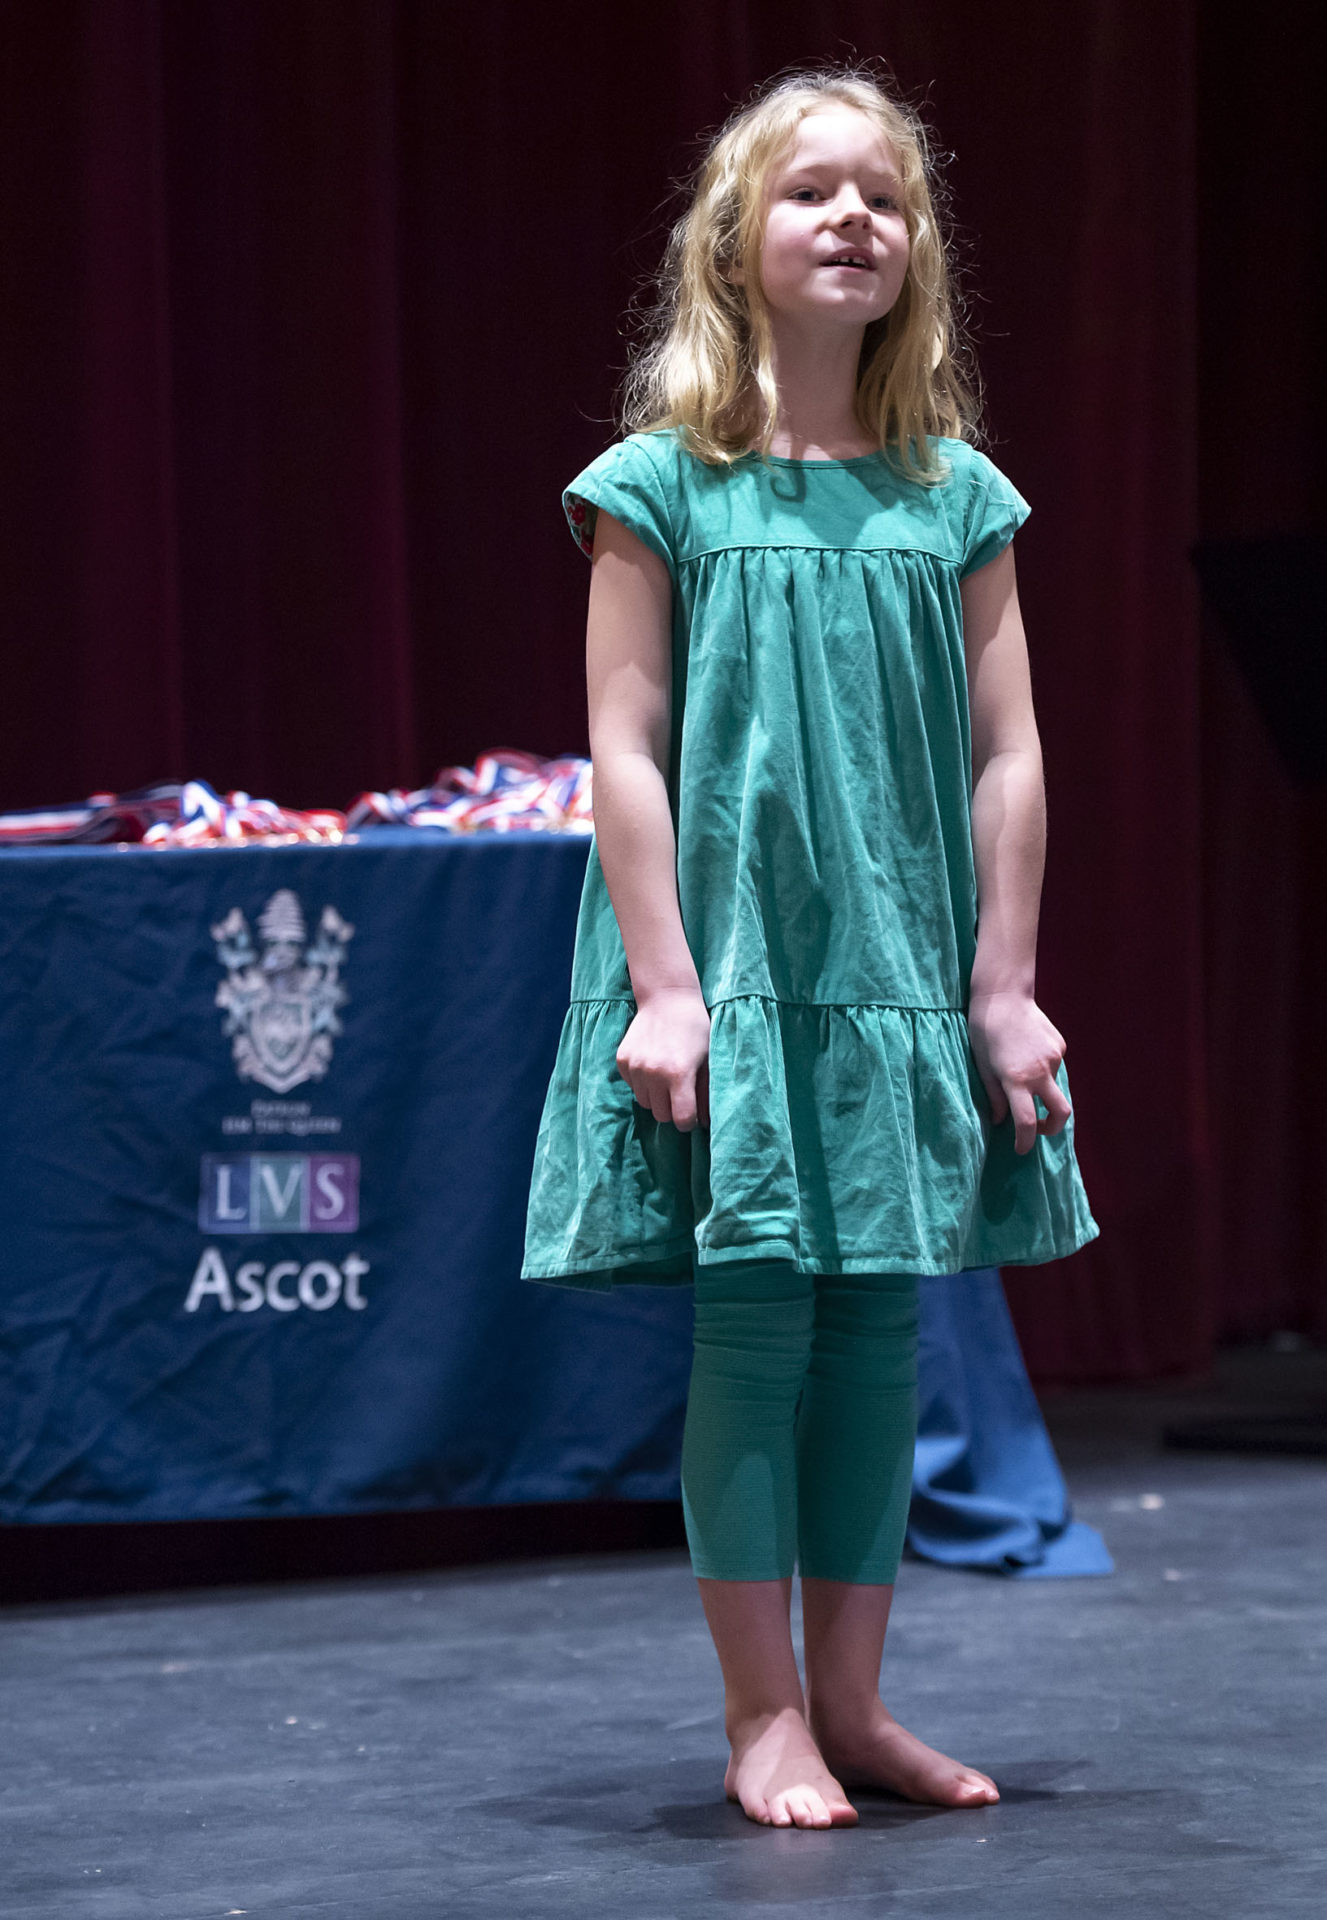 young girl performs on stage in the theatre at lvs ascot